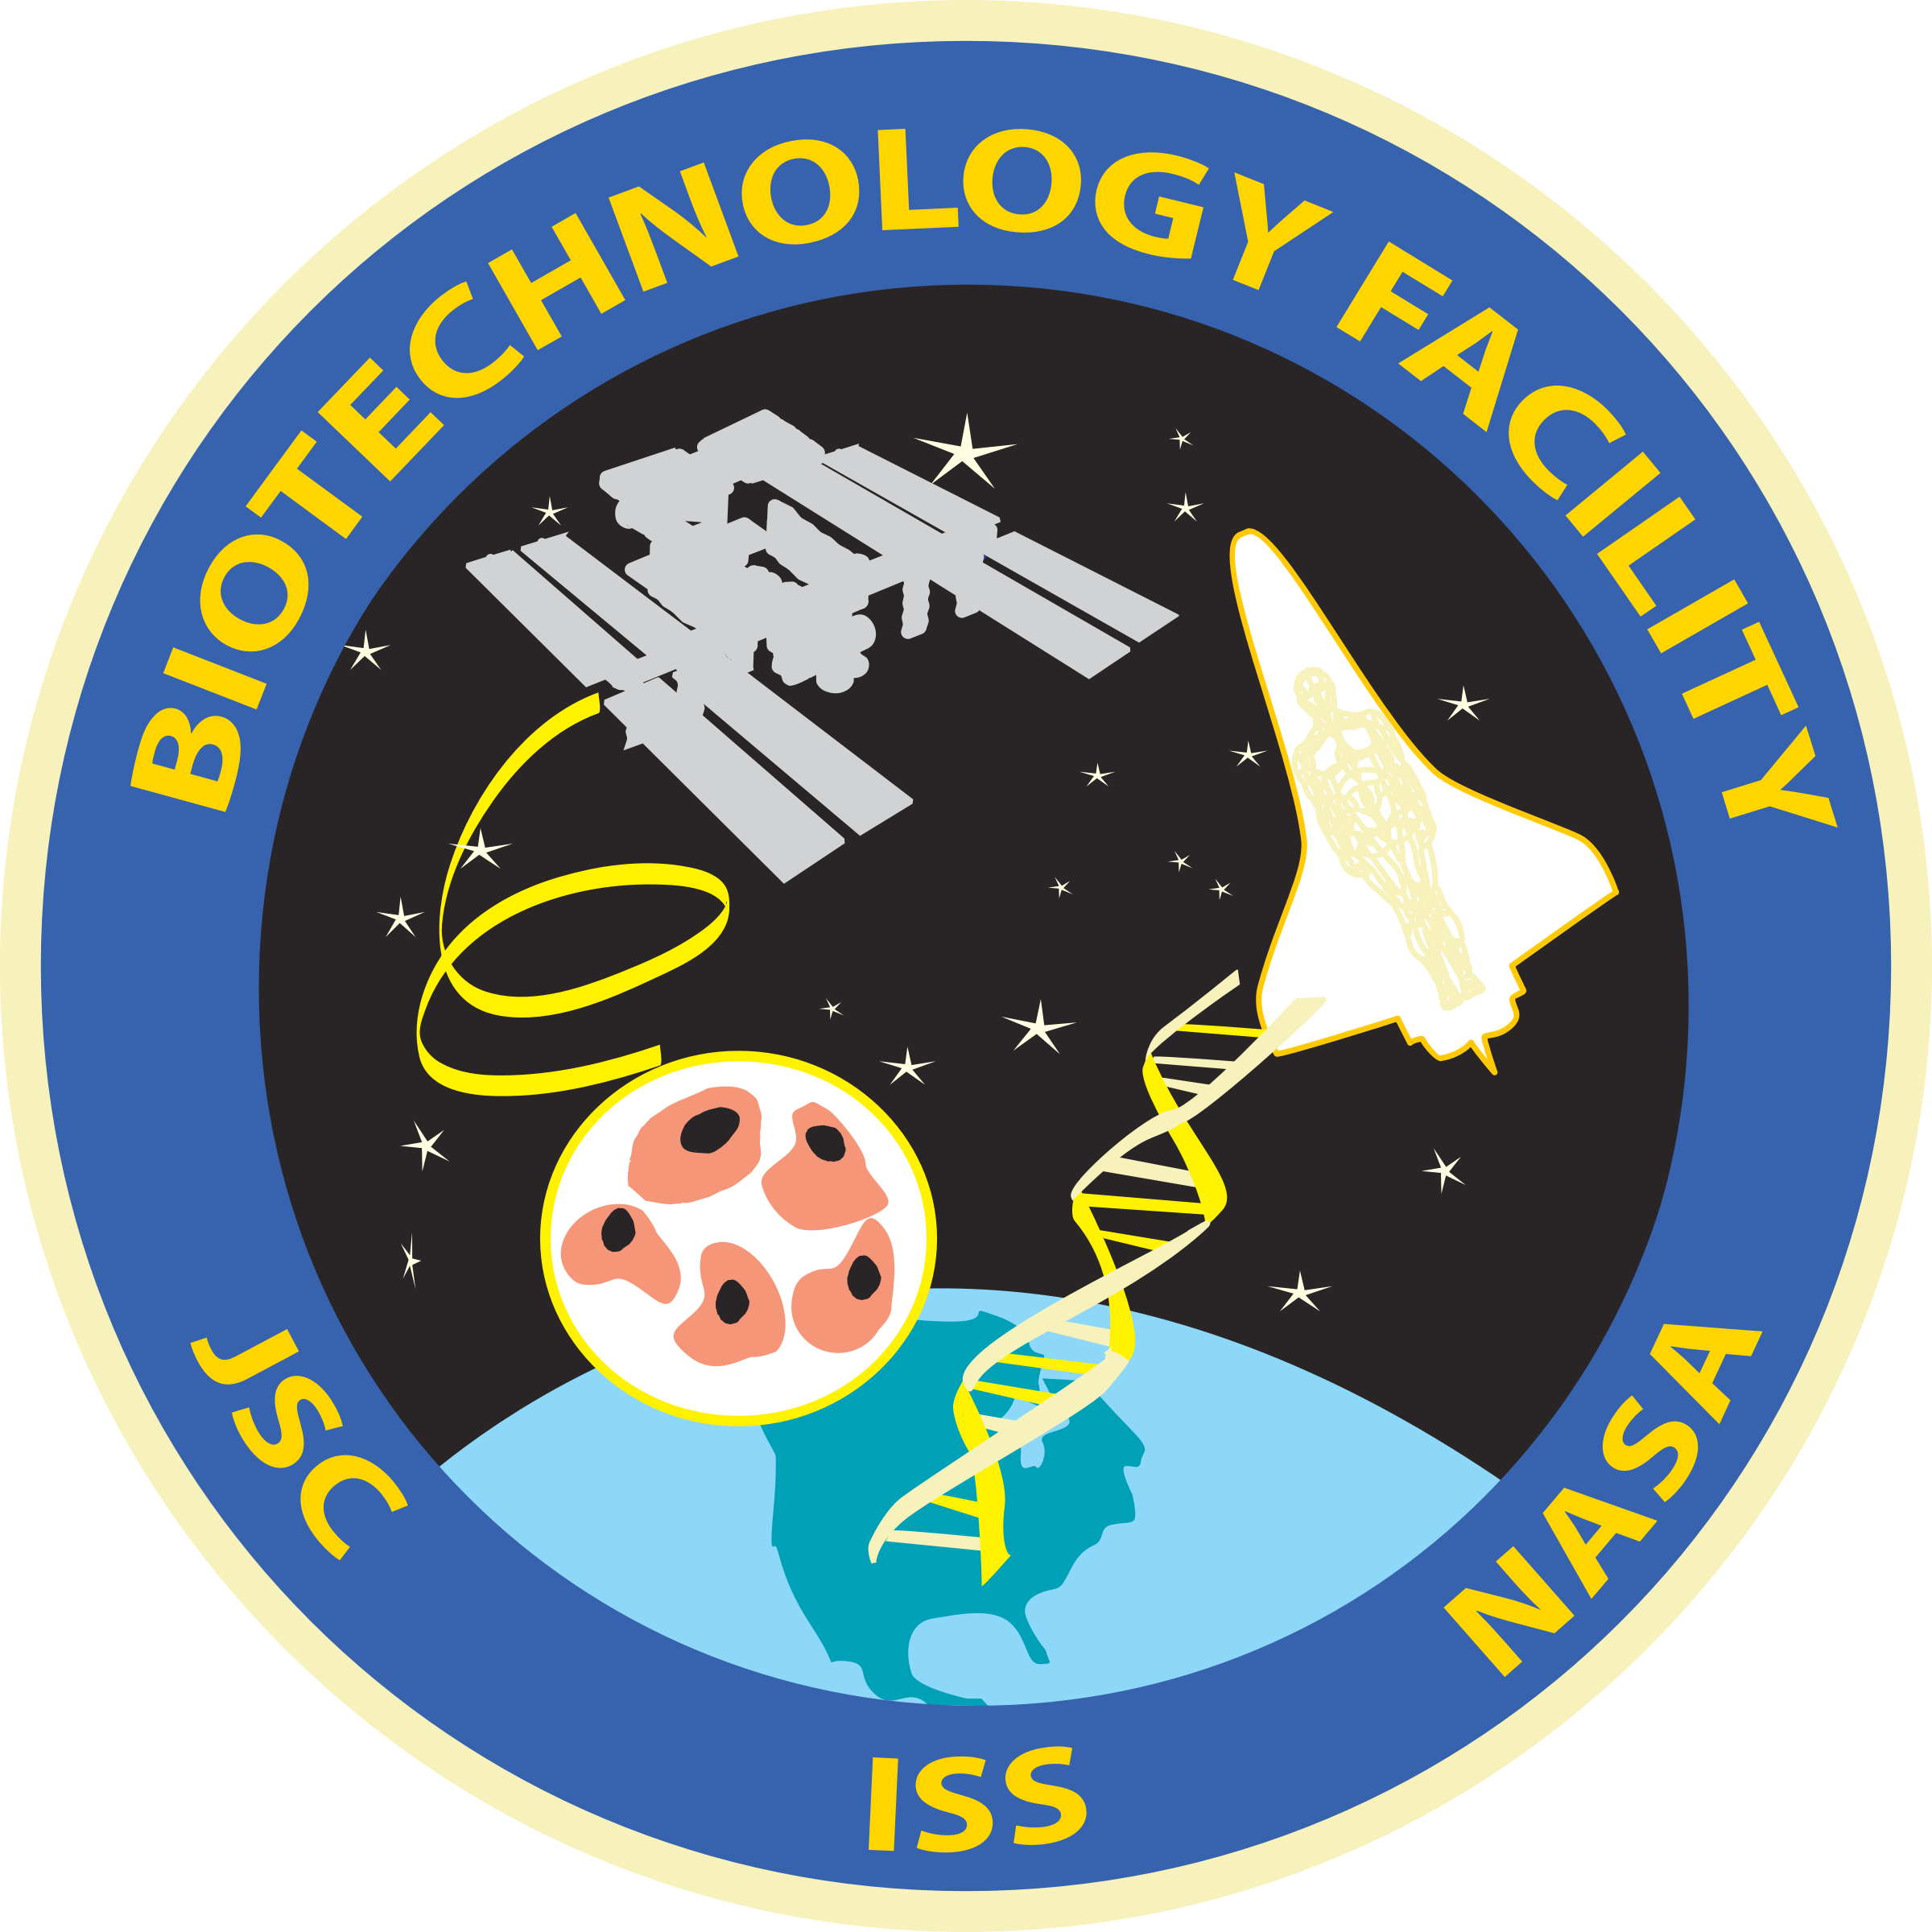 NASA Biotechnology Facility by NASA